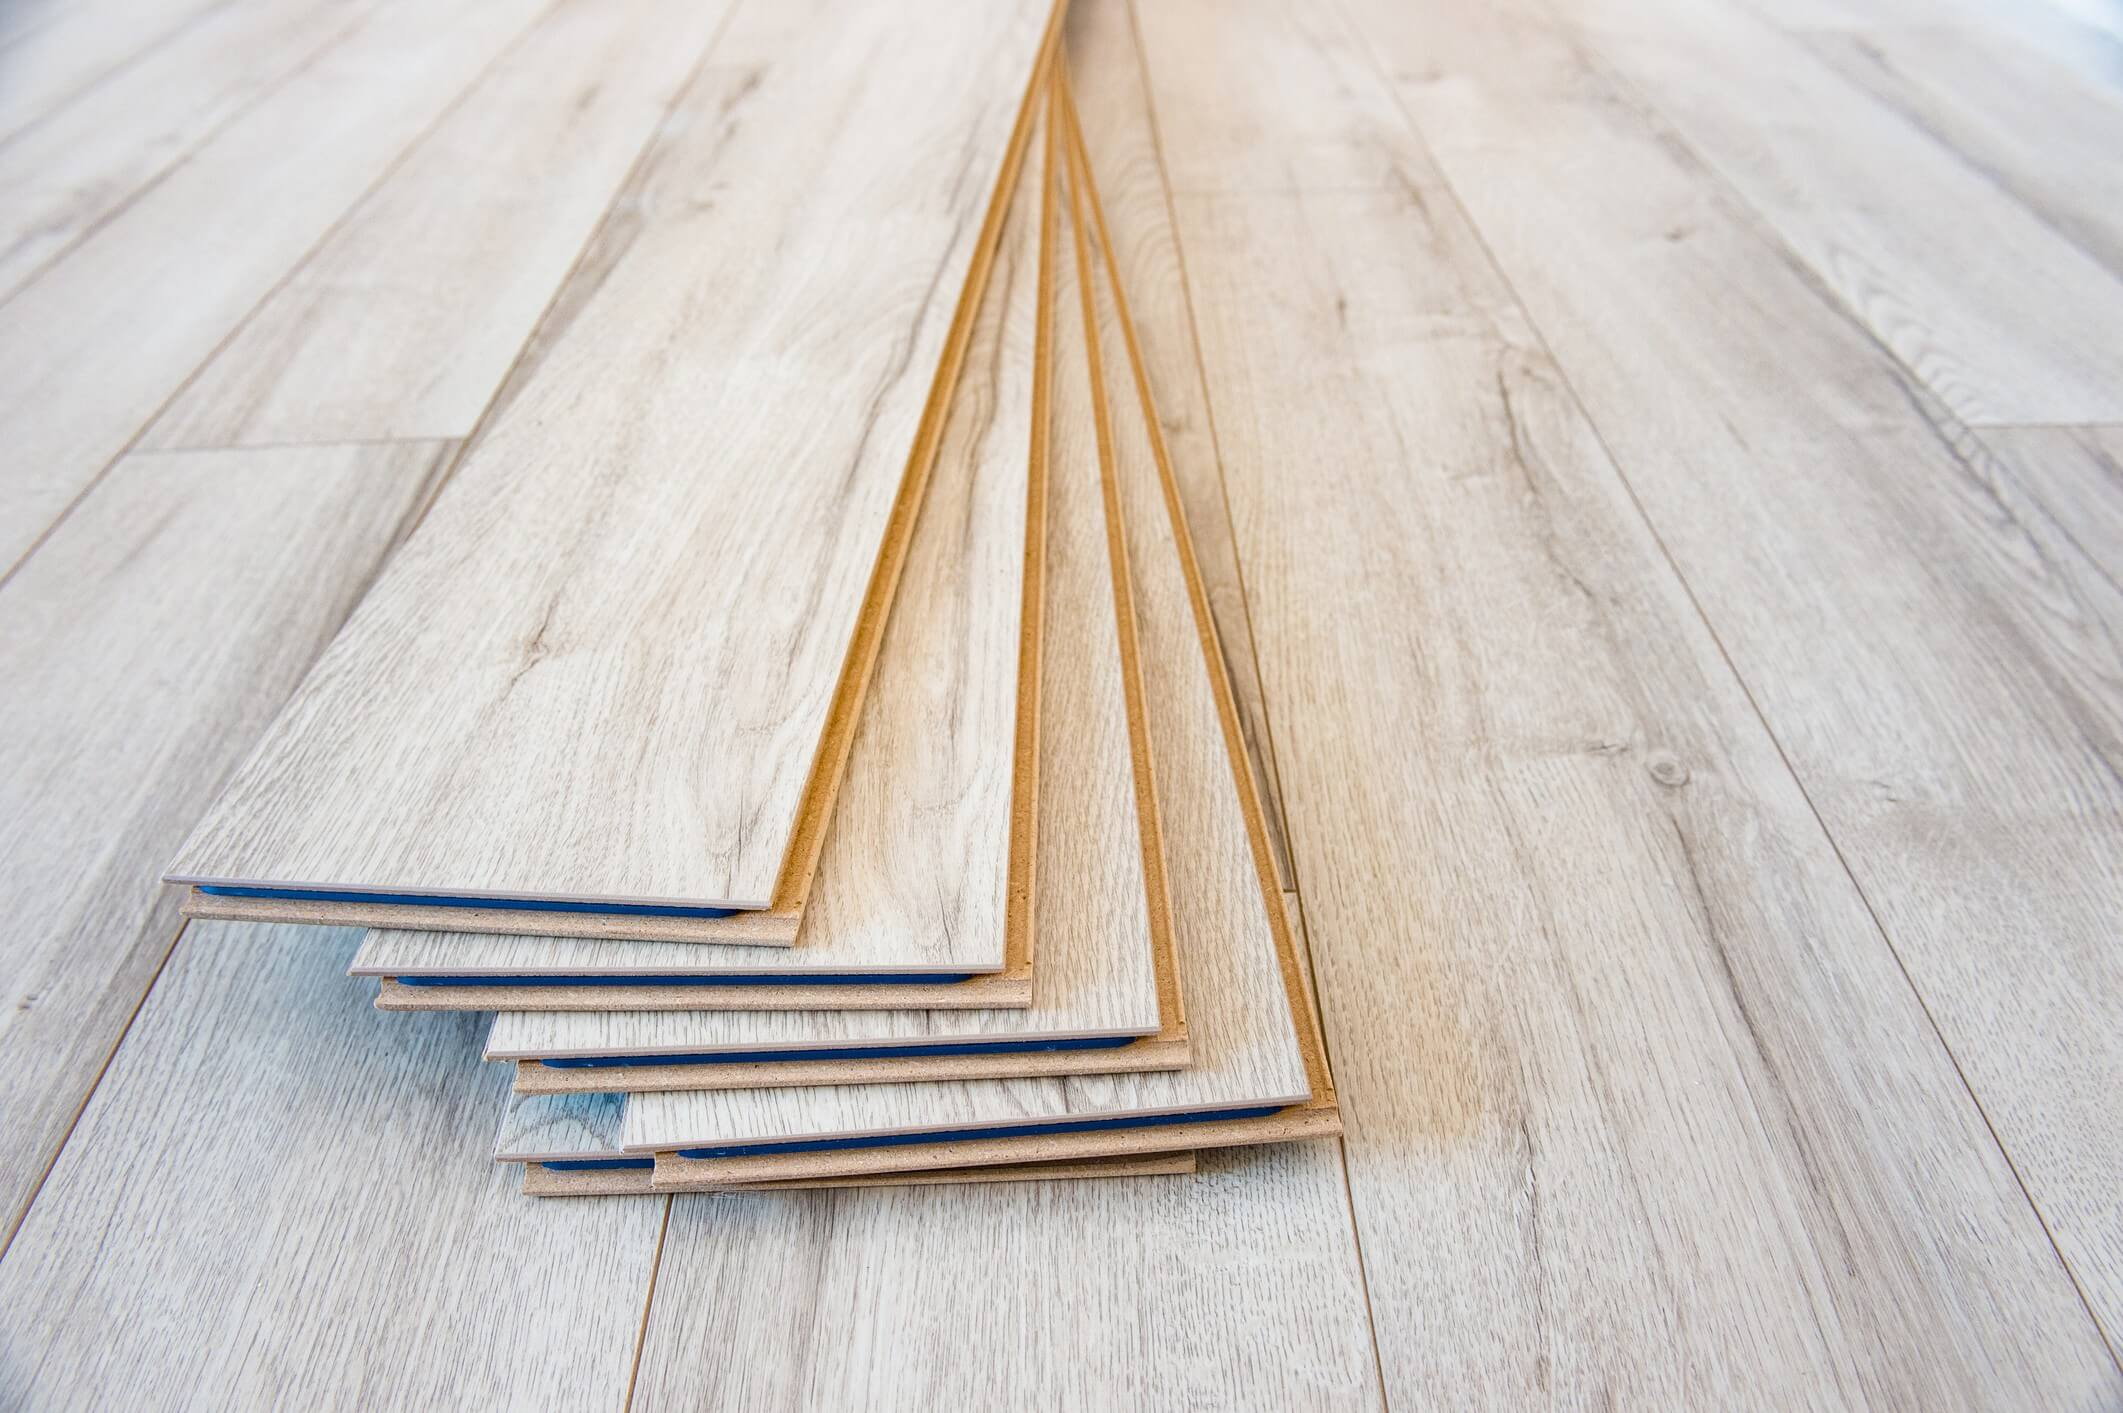 Leftover Laminate 5 Fun Projects You, What To Do With Used Laminate Flooring